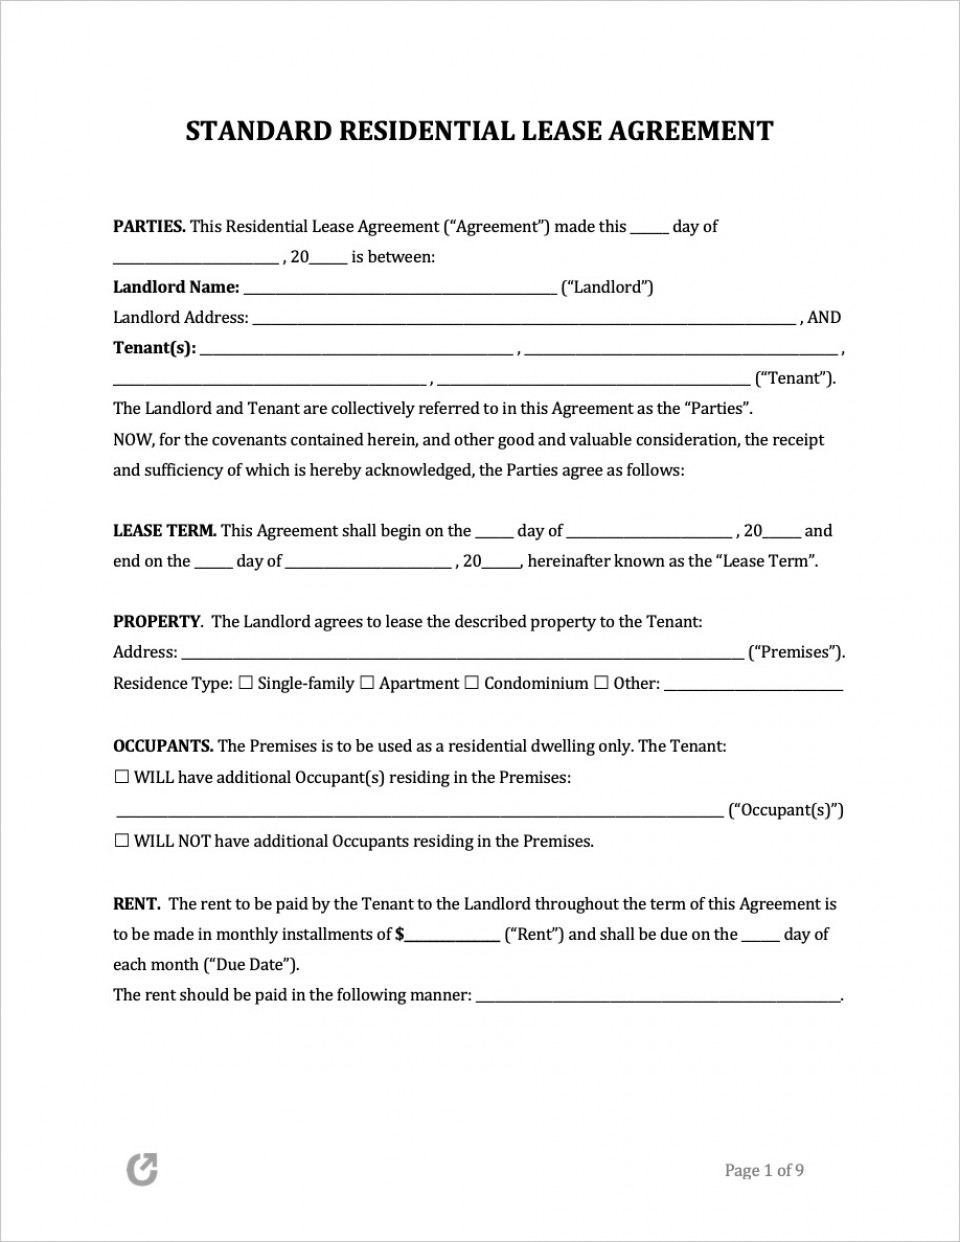 009 Phenomenal Free Rental Agreement Template Word High Resolution  South Africa House Lease Doc960